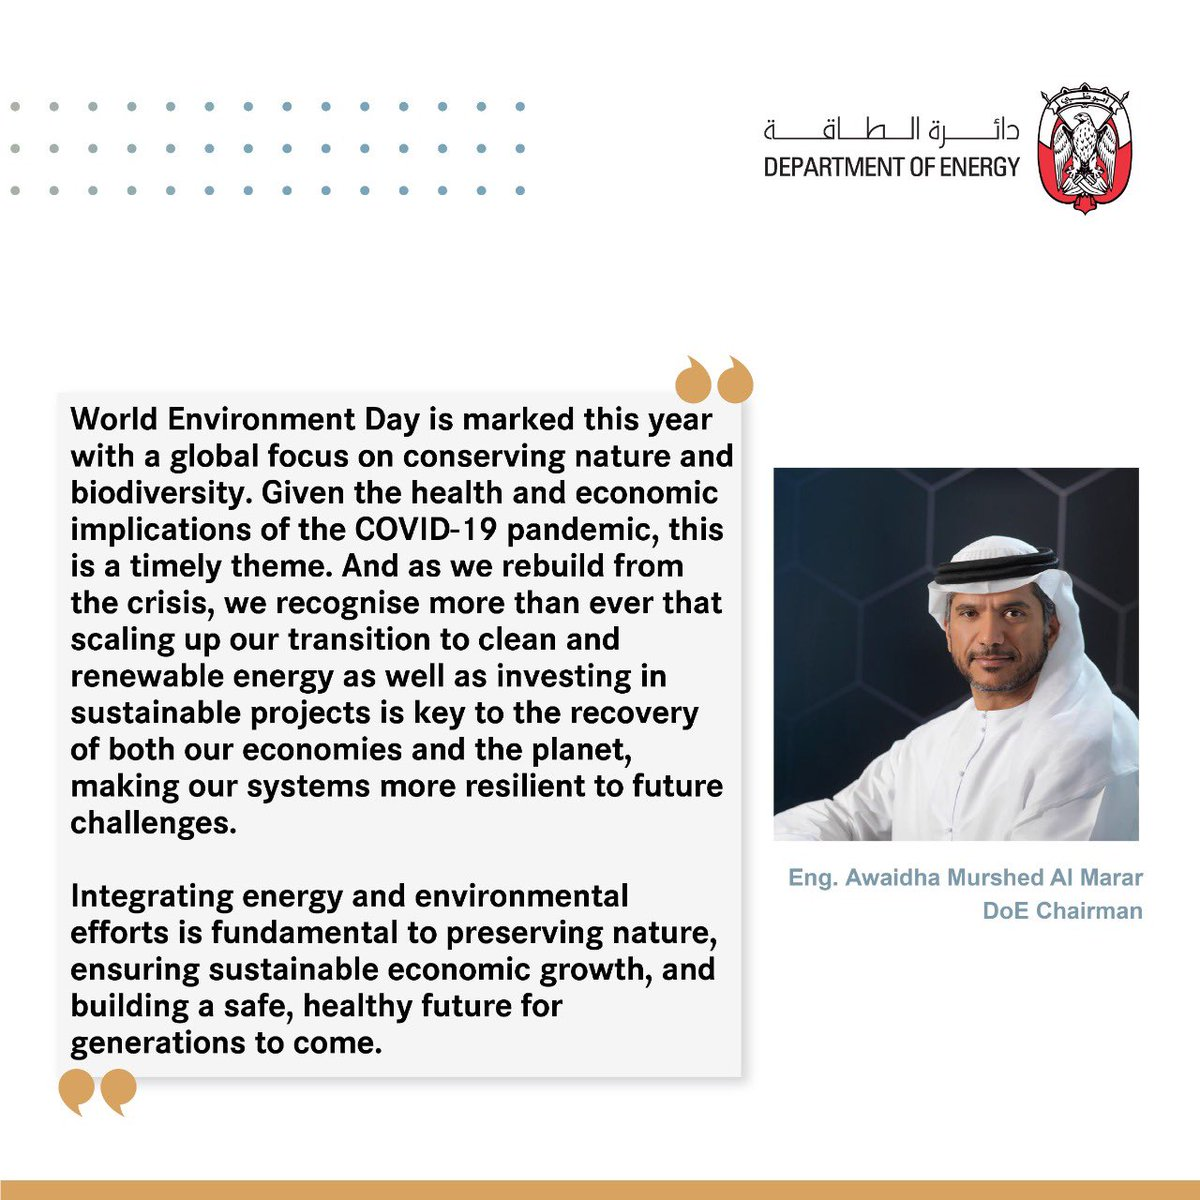 Integrating energy and environmental efforts is fundamental to preserving nature              #ForNature #WorldEnvironmentDay #WED2020 #DoE #Energy #Sustainability #TowardsaNewEnergyEra #StayHome https://t.co/nwSoPtD0TL